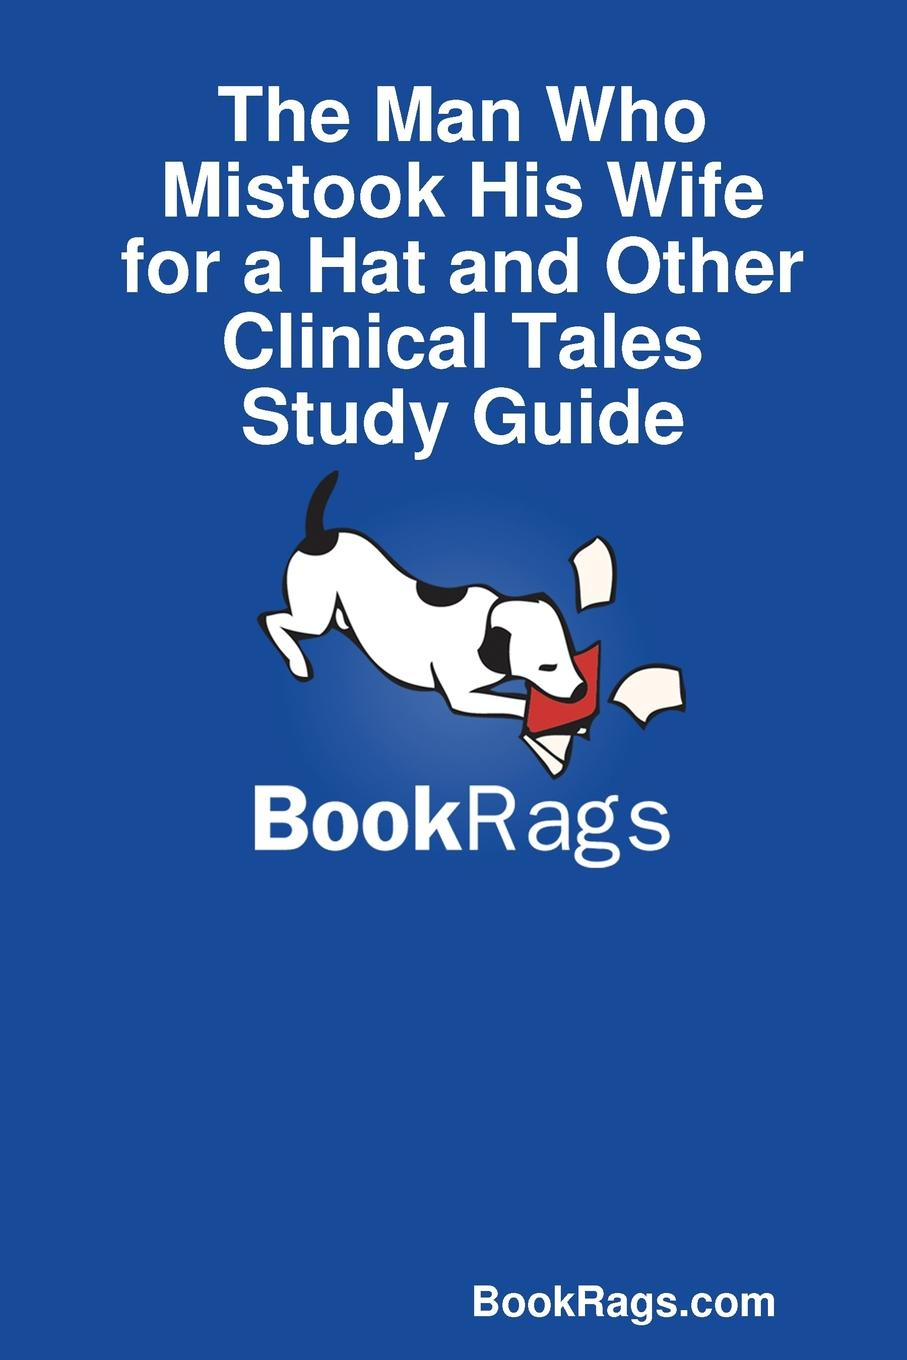 Bookrags Com The Man Who Mistook His Wife for a Hat and Other Clinical Tales Study Guide the man who shot the man who shot lincoln